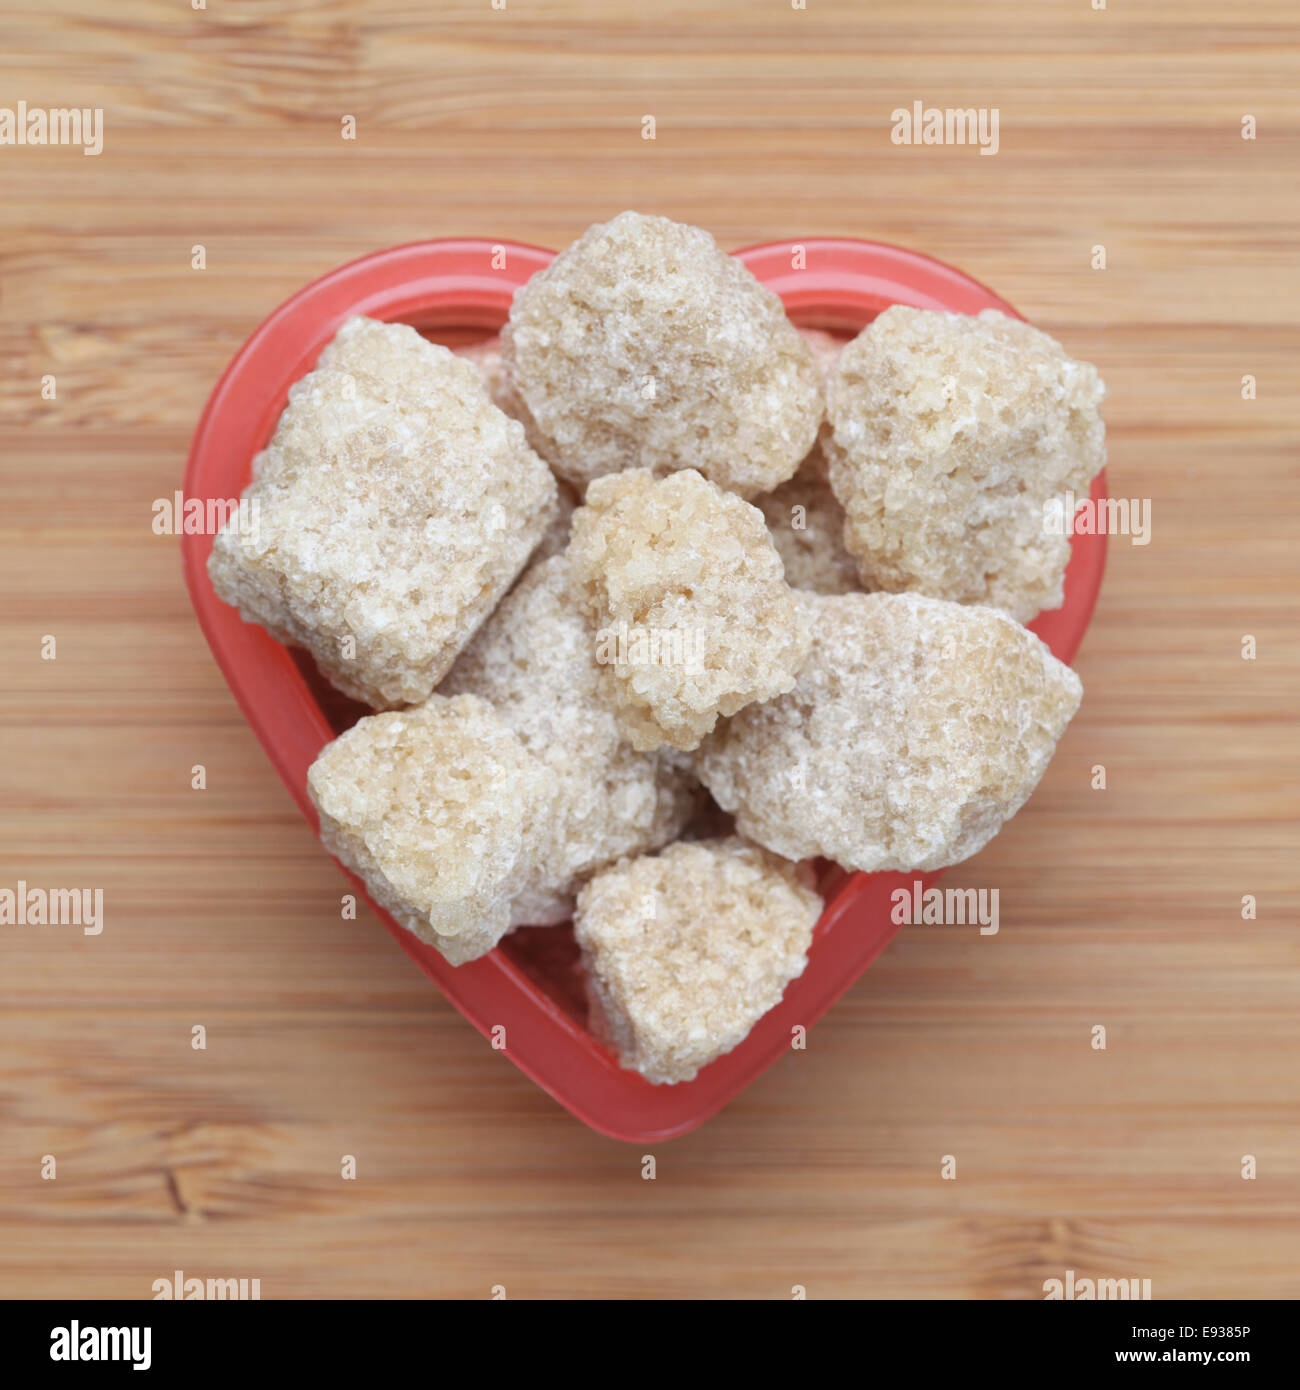 Brown cane sugars in a heart bowl. Close-up. - Stock Image